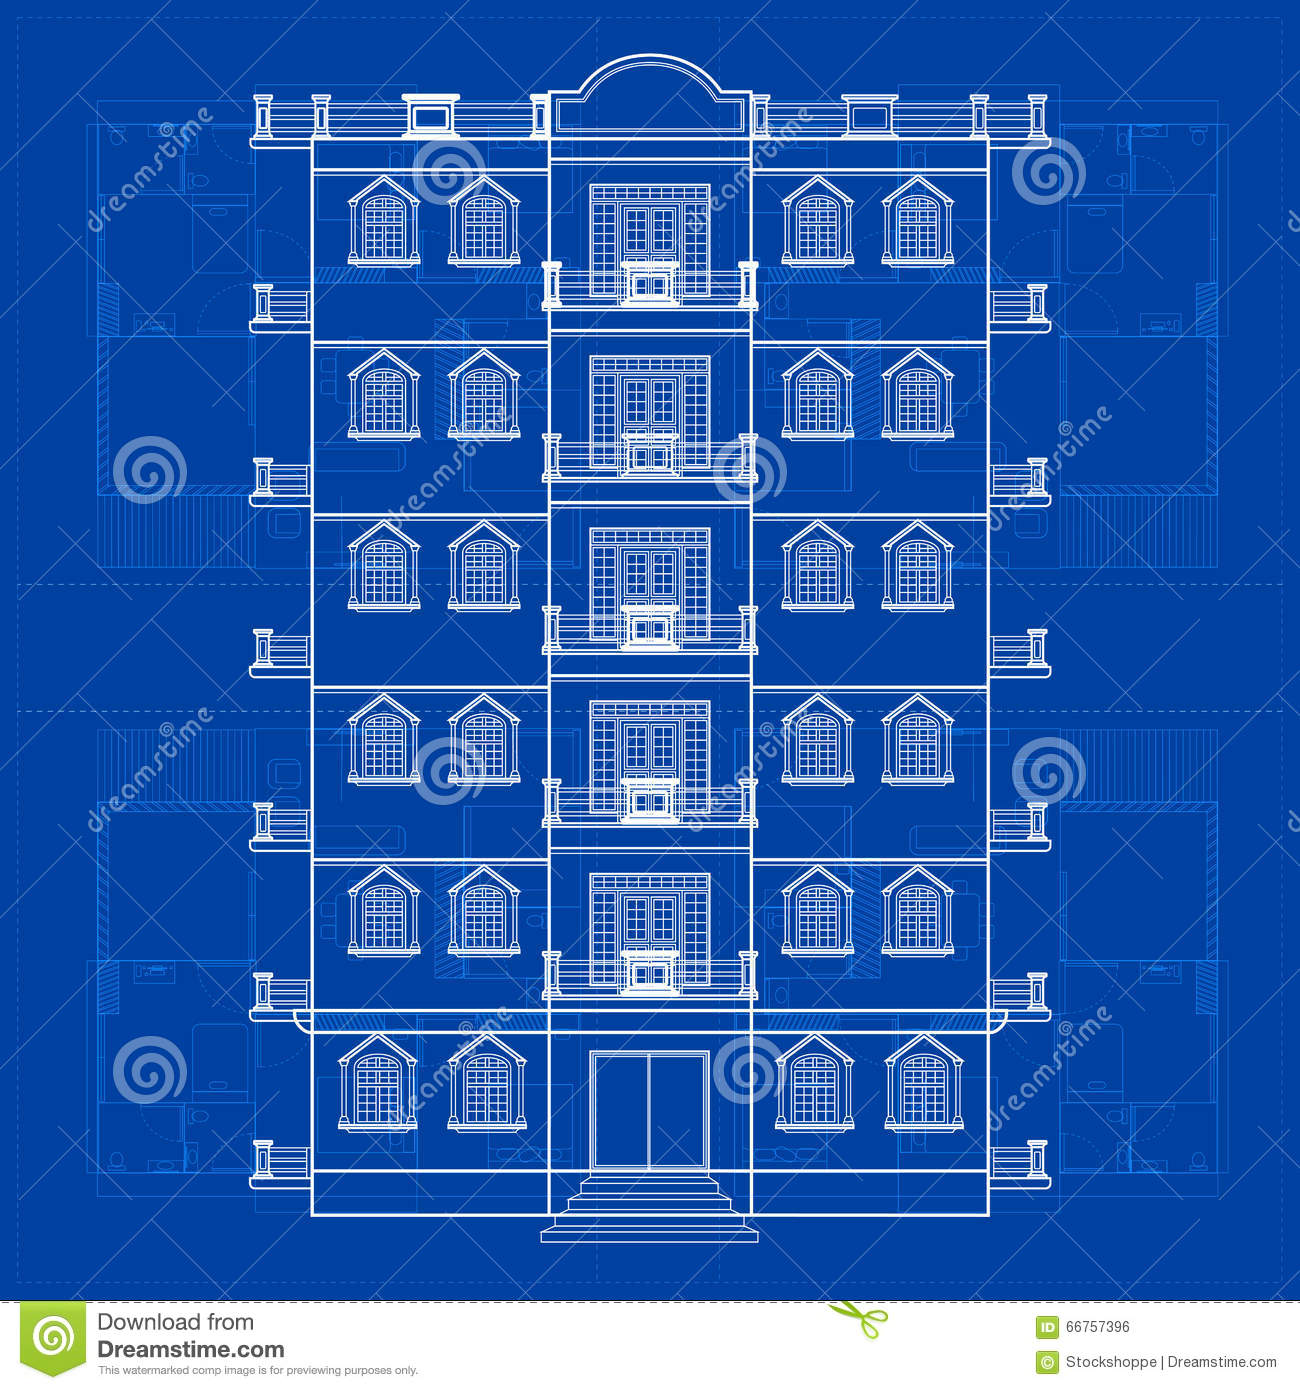 Blueprint of building stock vector illustration of layout 66757396 download blueprint of building stock vector illustration of layout 66757396 malvernweather Choice Image